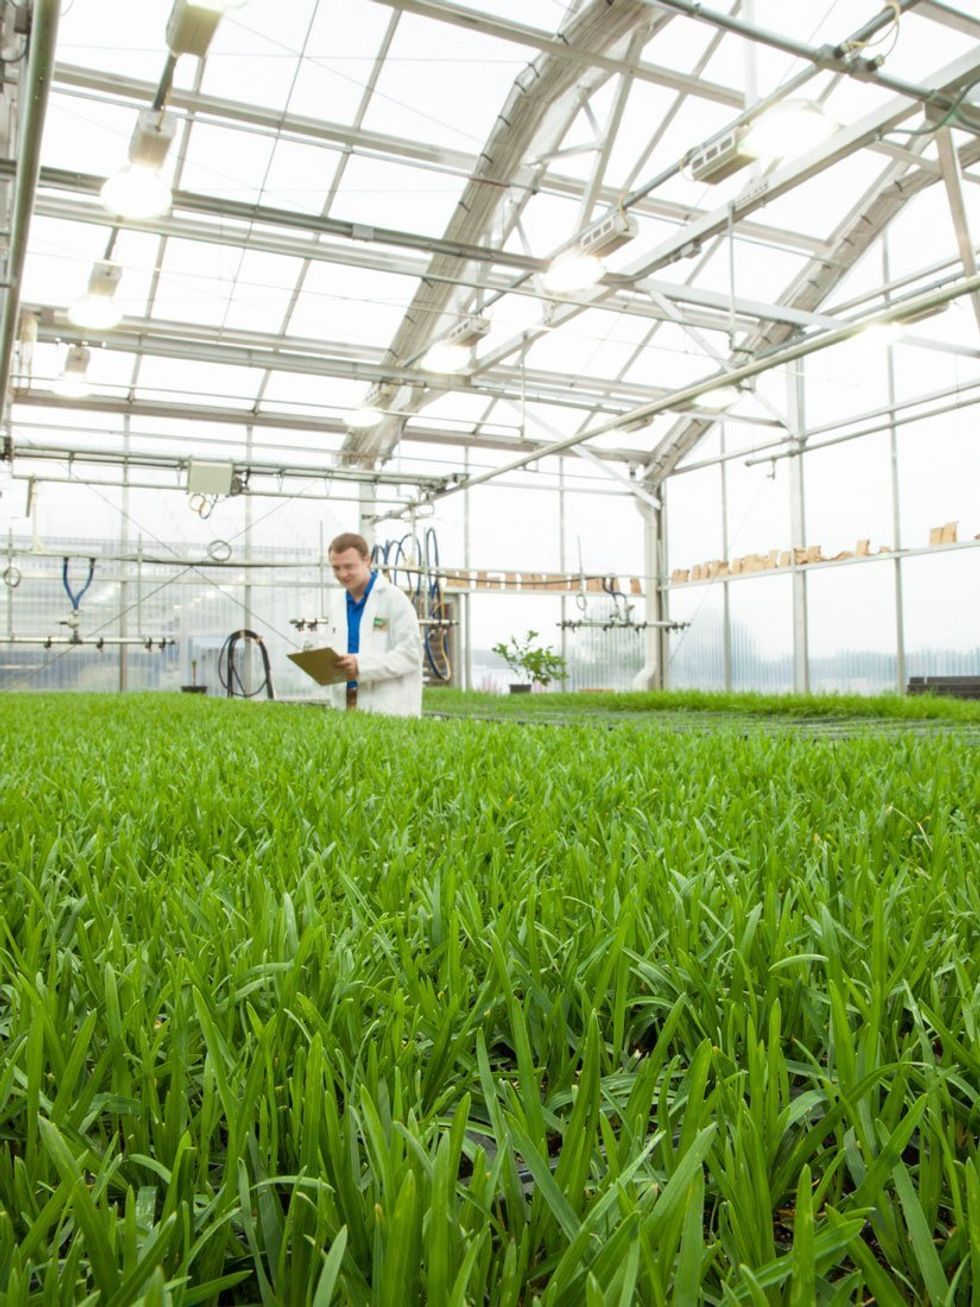 Roundup Ready GMO Grass Coming to a Lawn Near You?